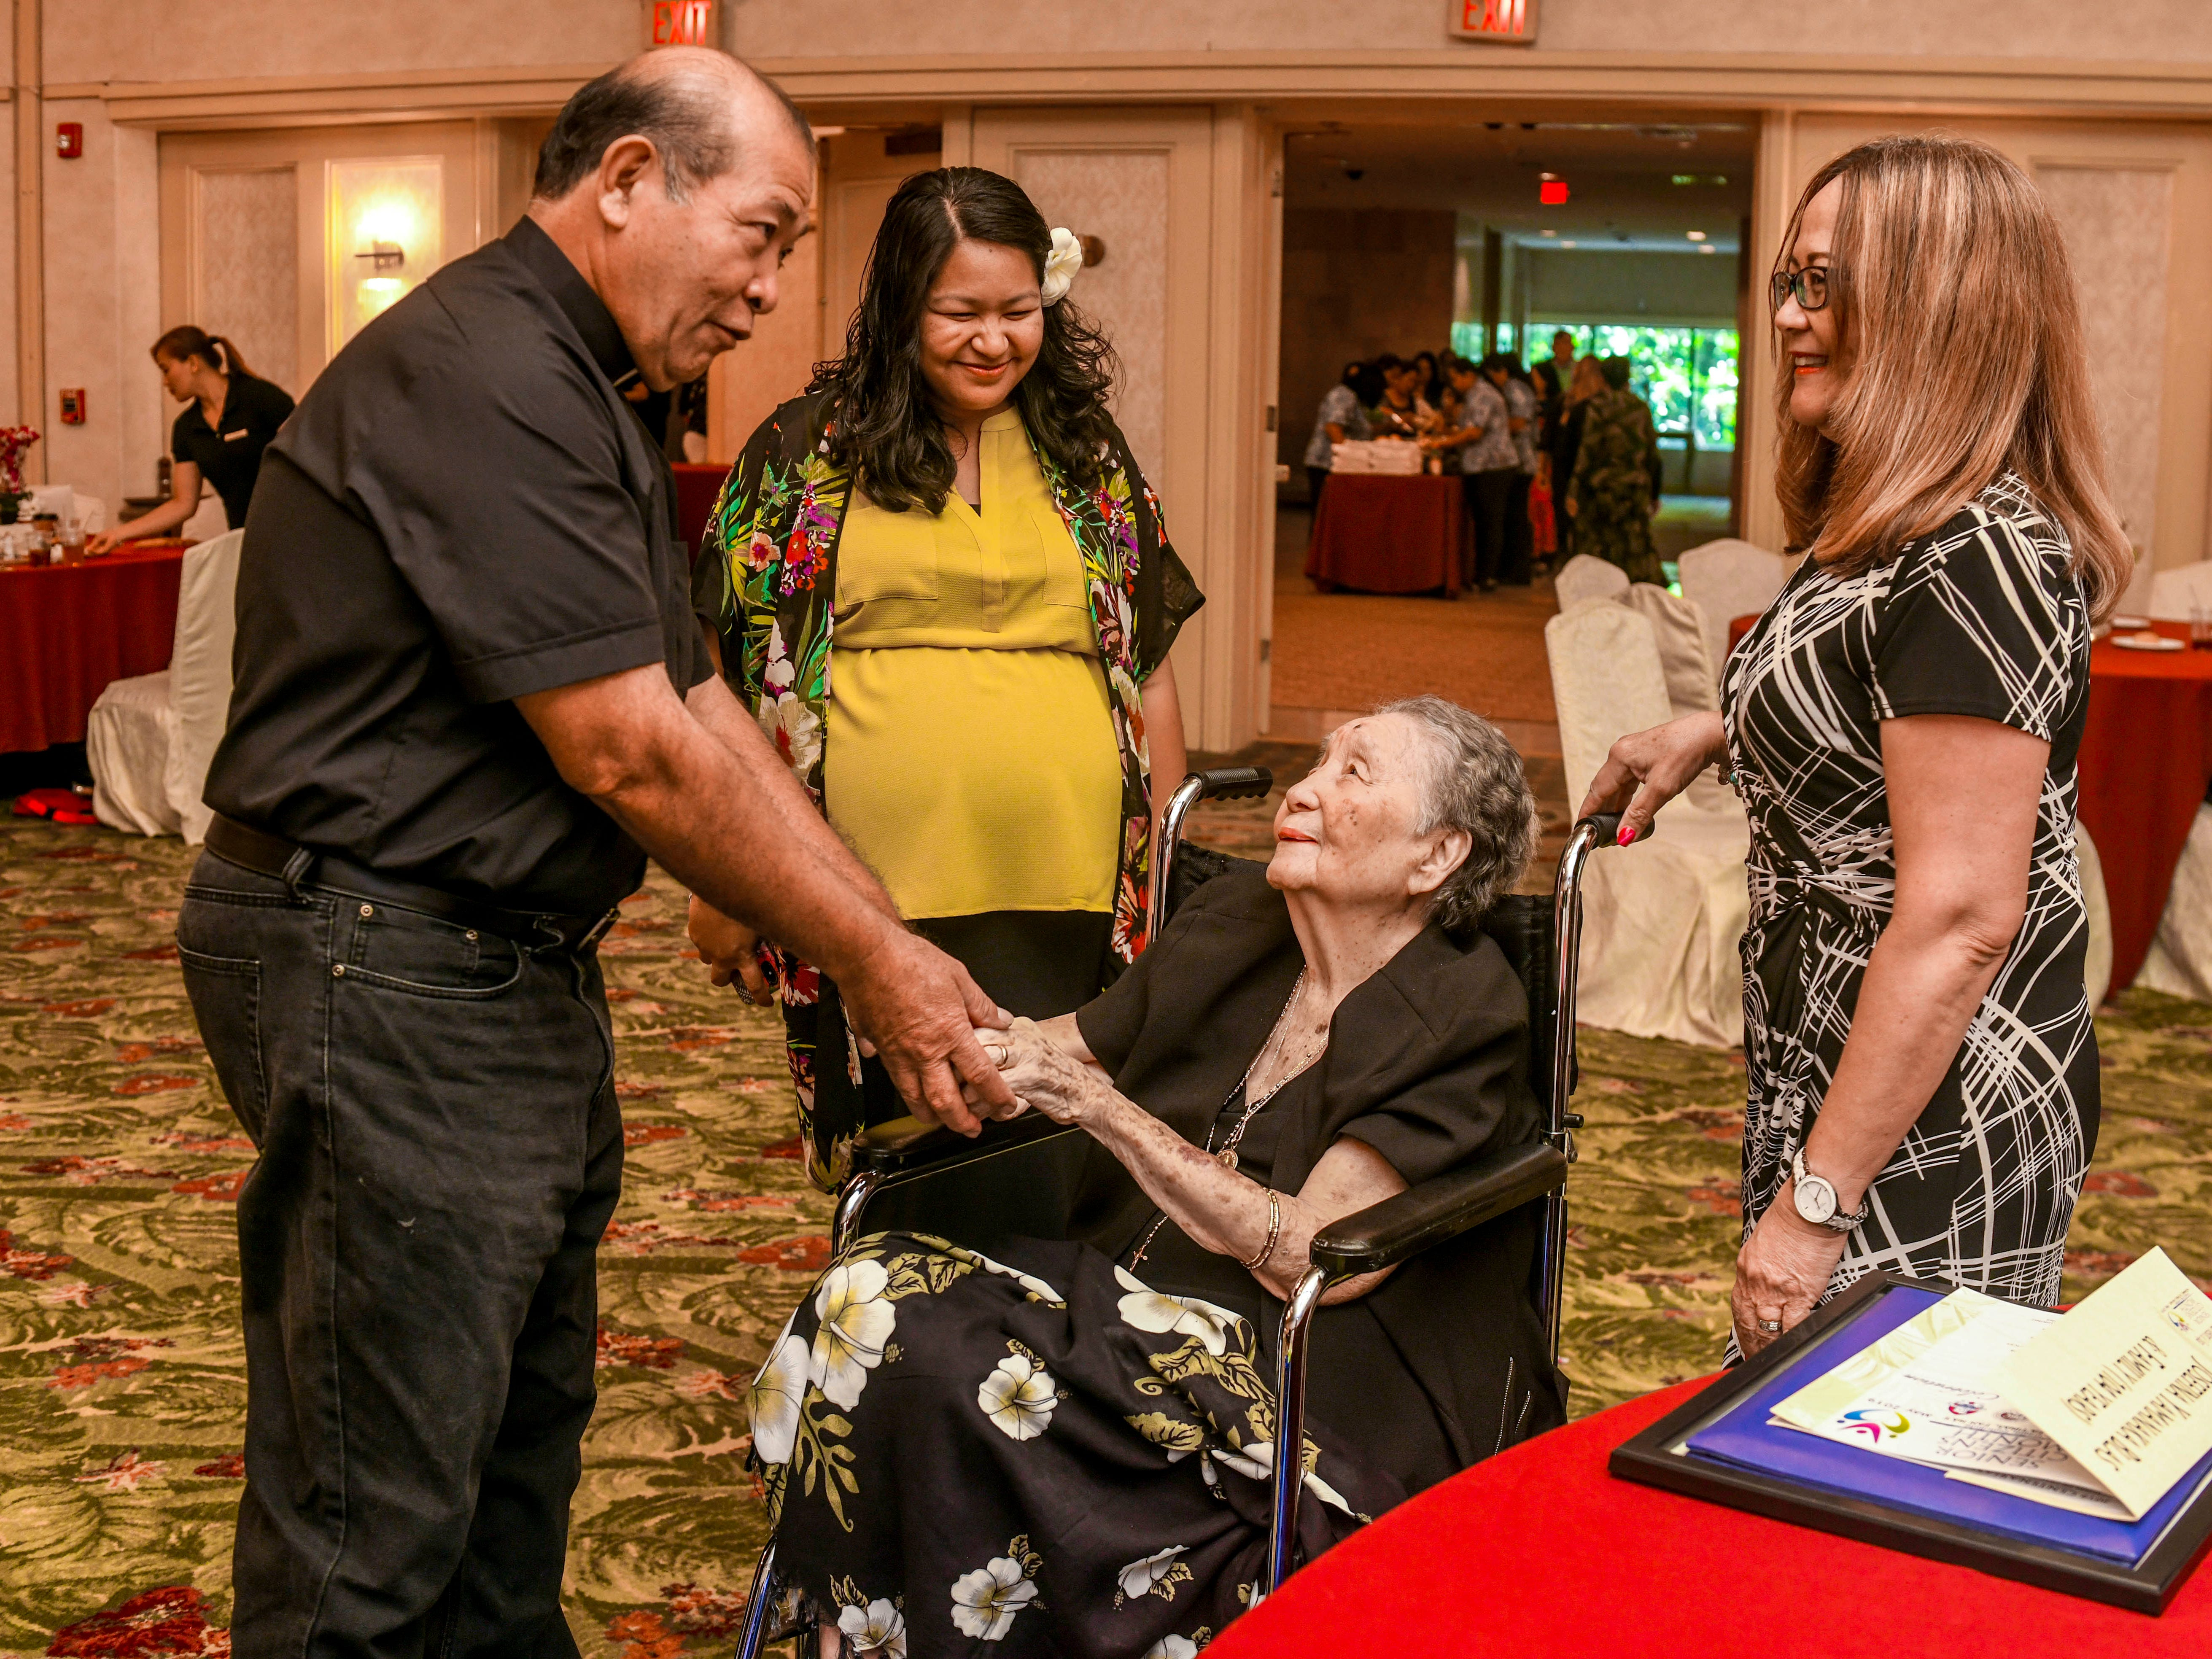 Santa Barbara Catholic Church's Deacon Romeo Hernandez, left, stops to chat with Josephina Dorotea Yamanaka Blas and other family members during the 2019 Centenarian Celebration, hosted by the Department of Public Health and Social Services, at the Pacific Star Resort & Spa in Tumon on Thursday, May 9, 2019. Blas, a mother of nine children, also surrounds herself with 42 grandchildren, 100 great-grandchildren, 28 great-great-grandchildren, according to her granddaughter Liza Mary Blas Matanane.